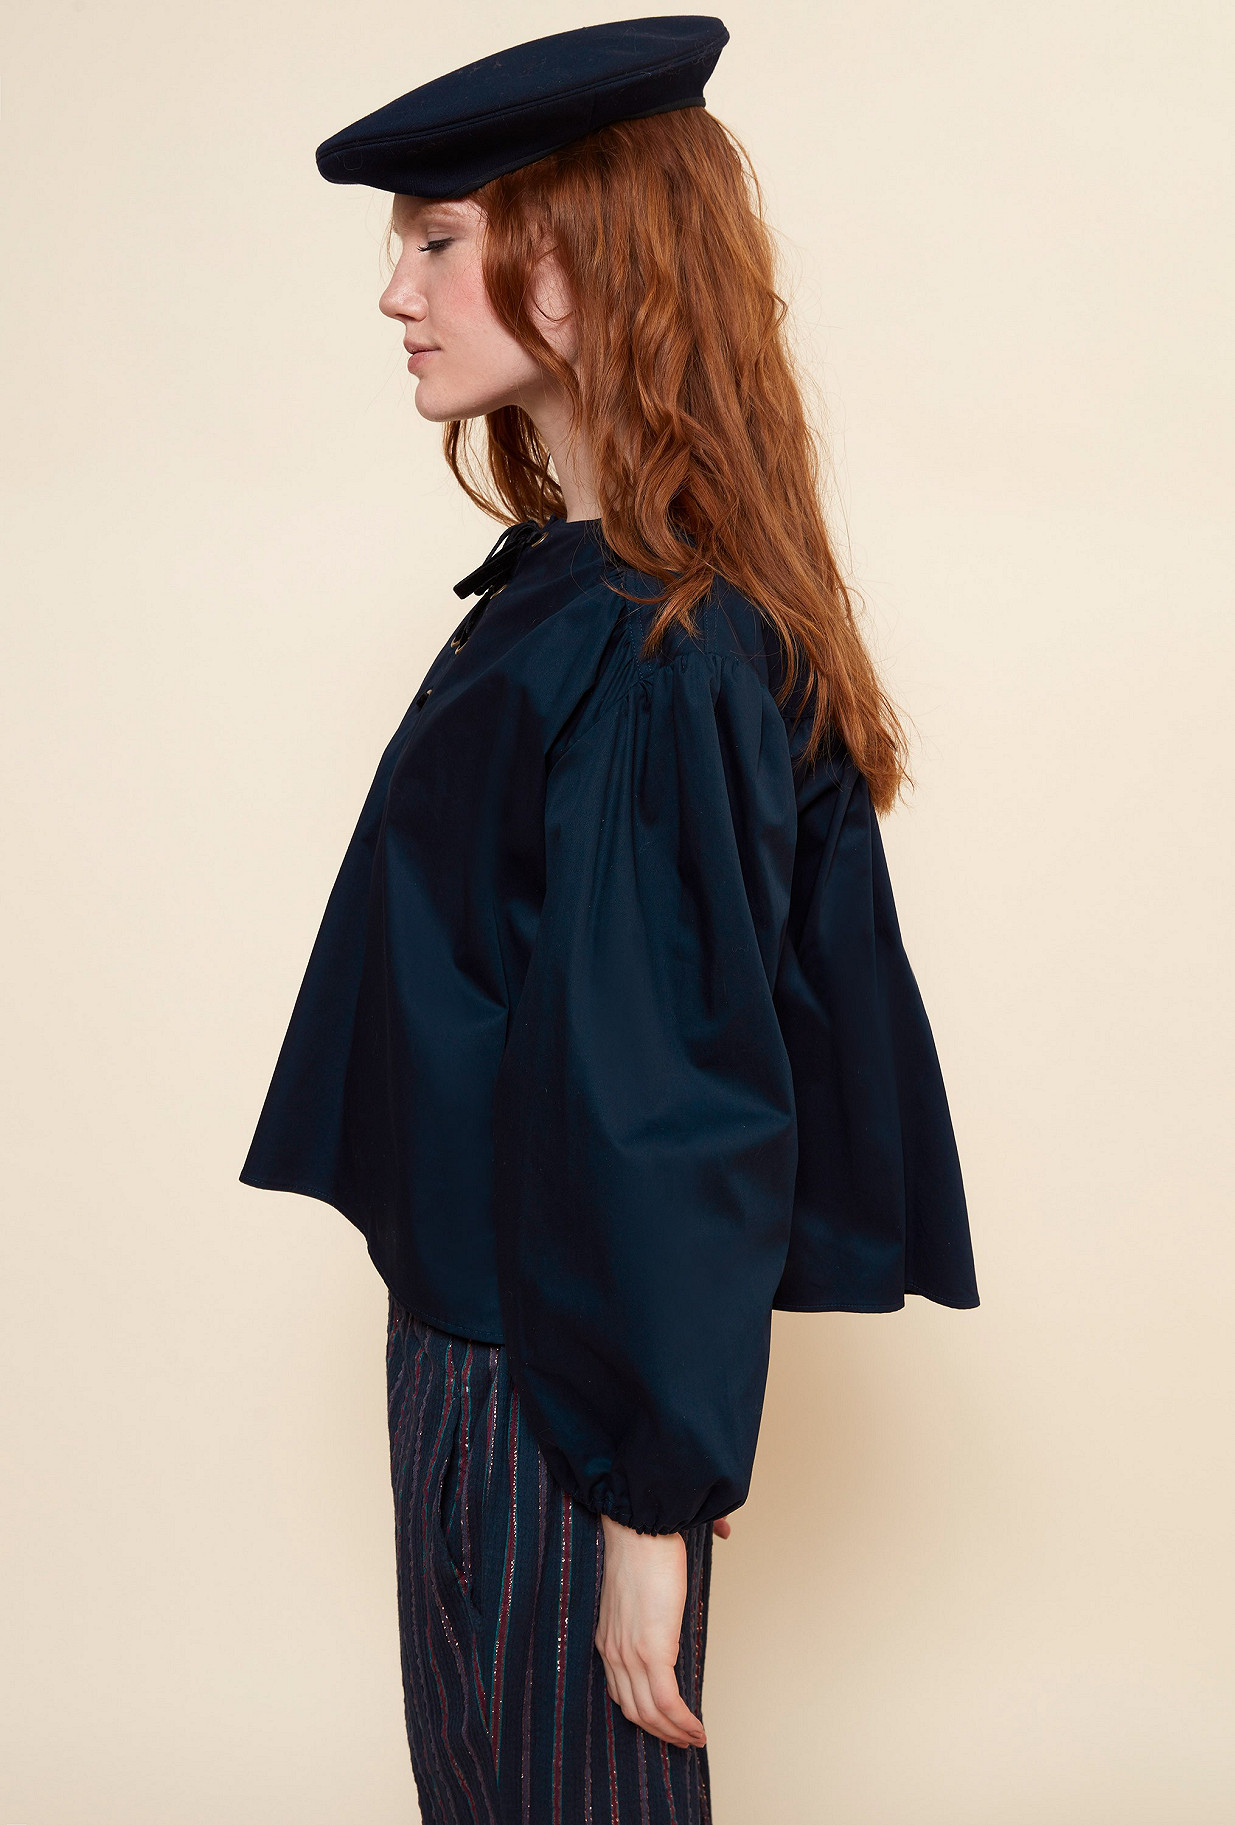 Blouse Navy Graham Mes Demoiselles Paris